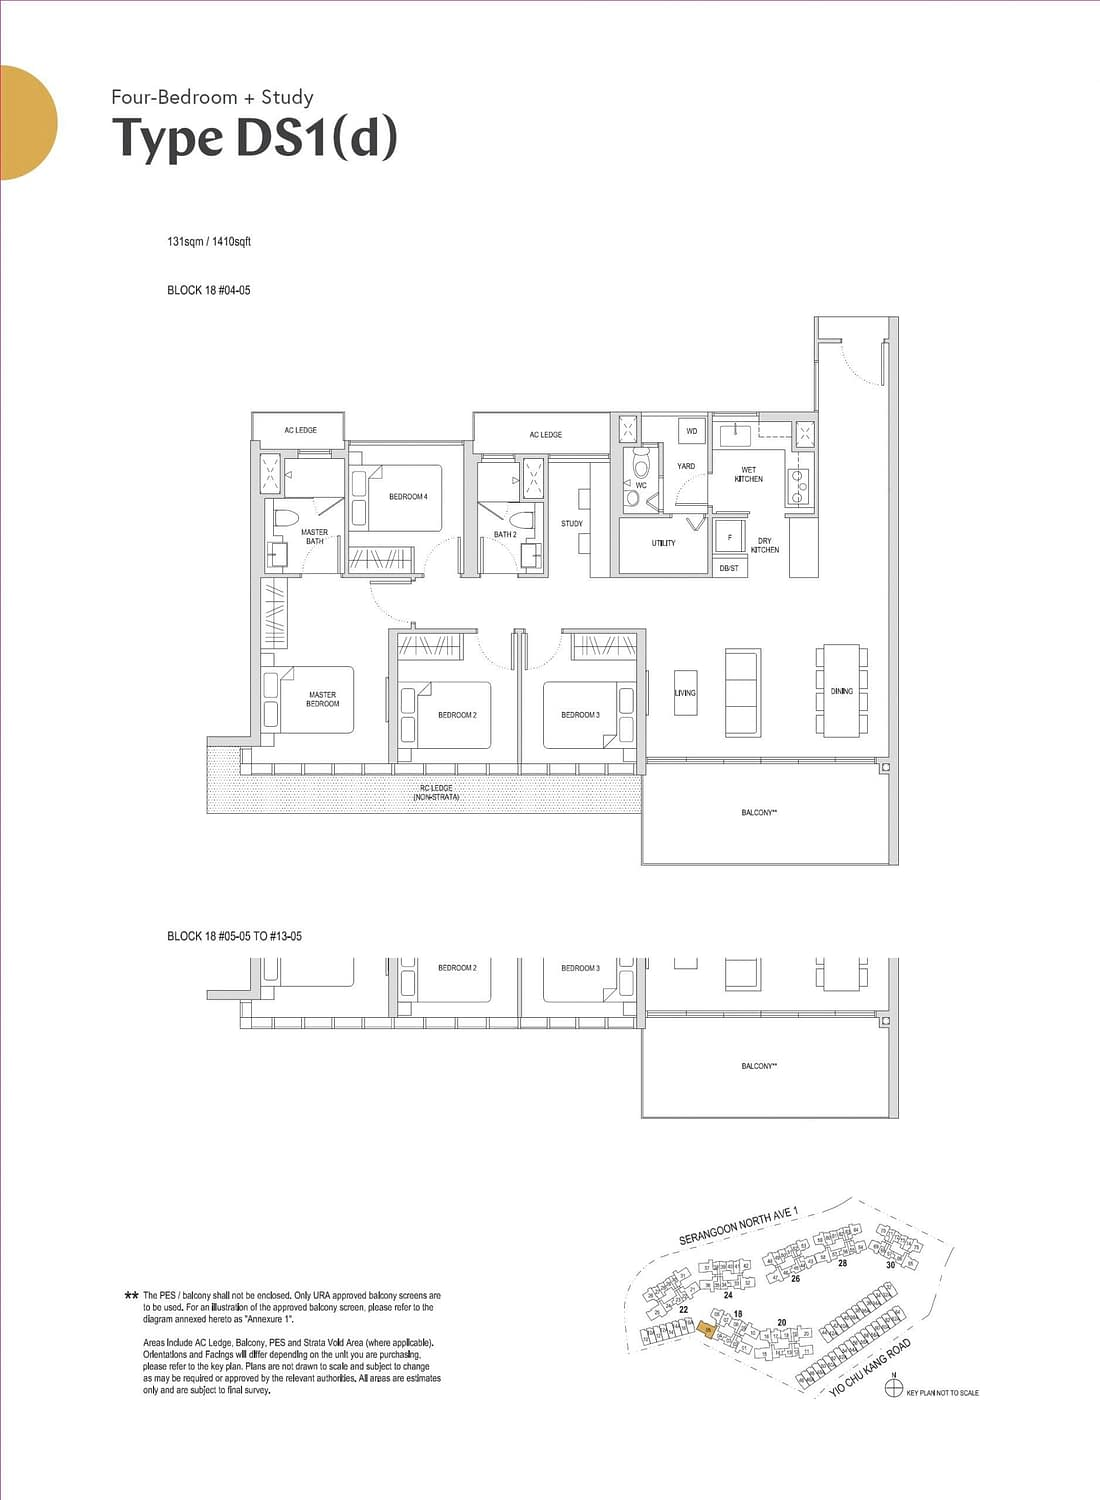 Affinity at Serangoon Affinity at Serangoon floorplan DS1d scaled